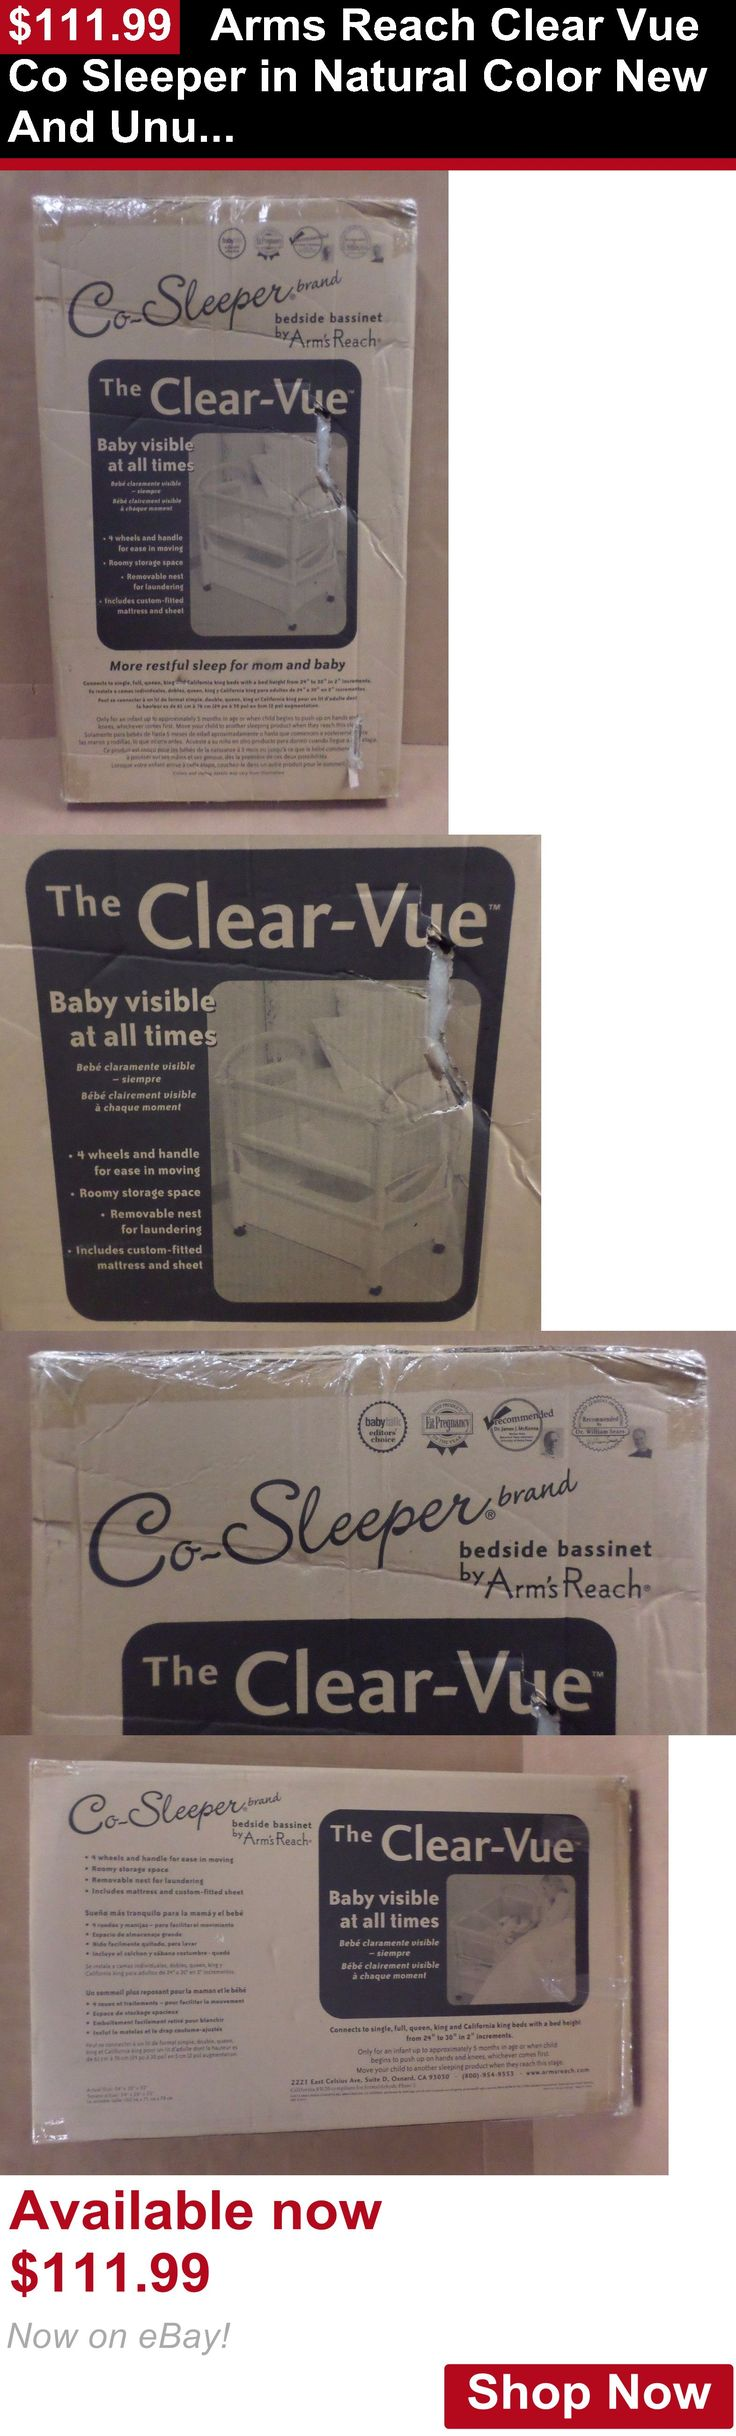 clear vue co sleeper instructions